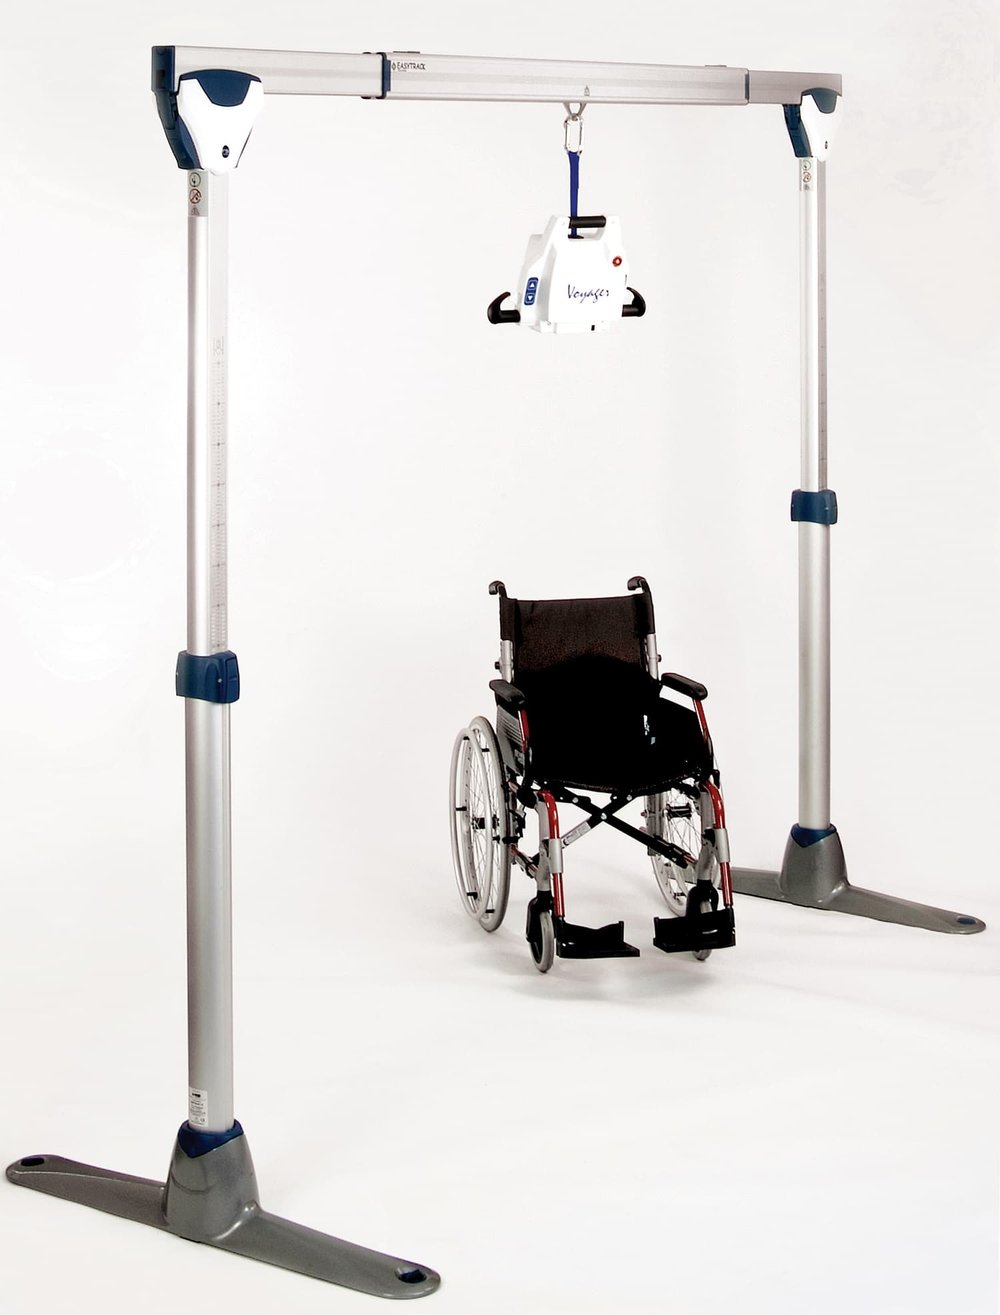 Lift For Disabled Person : Hoists for lifting disabled people — dolphin mobility